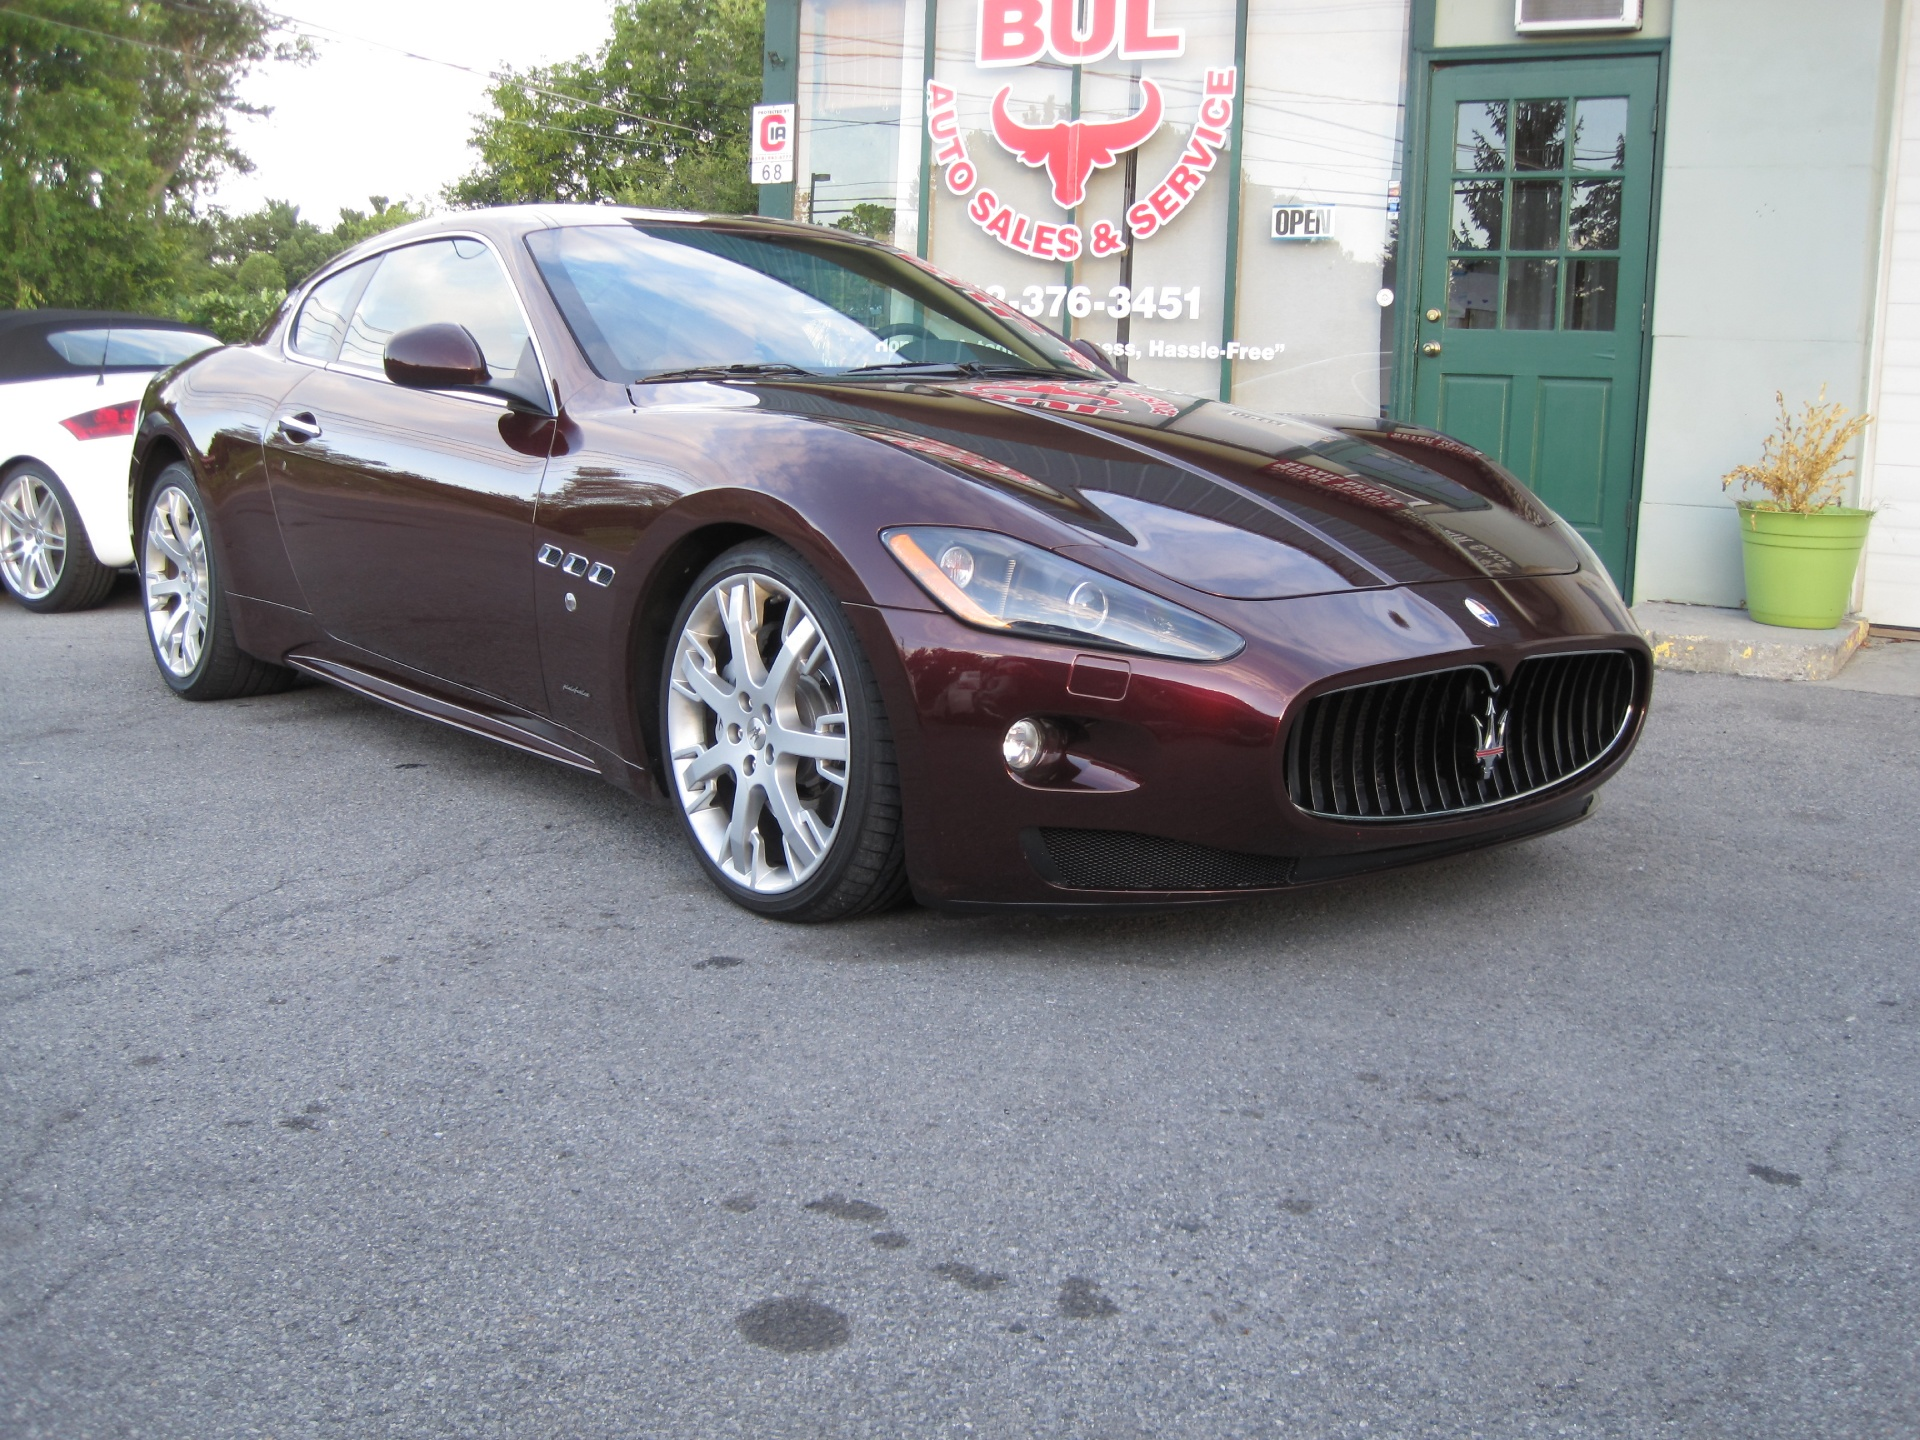 2009 maserati granturismo s gts super rare f430 engine and. Black Bedroom Furniture Sets. Home Design Ideas